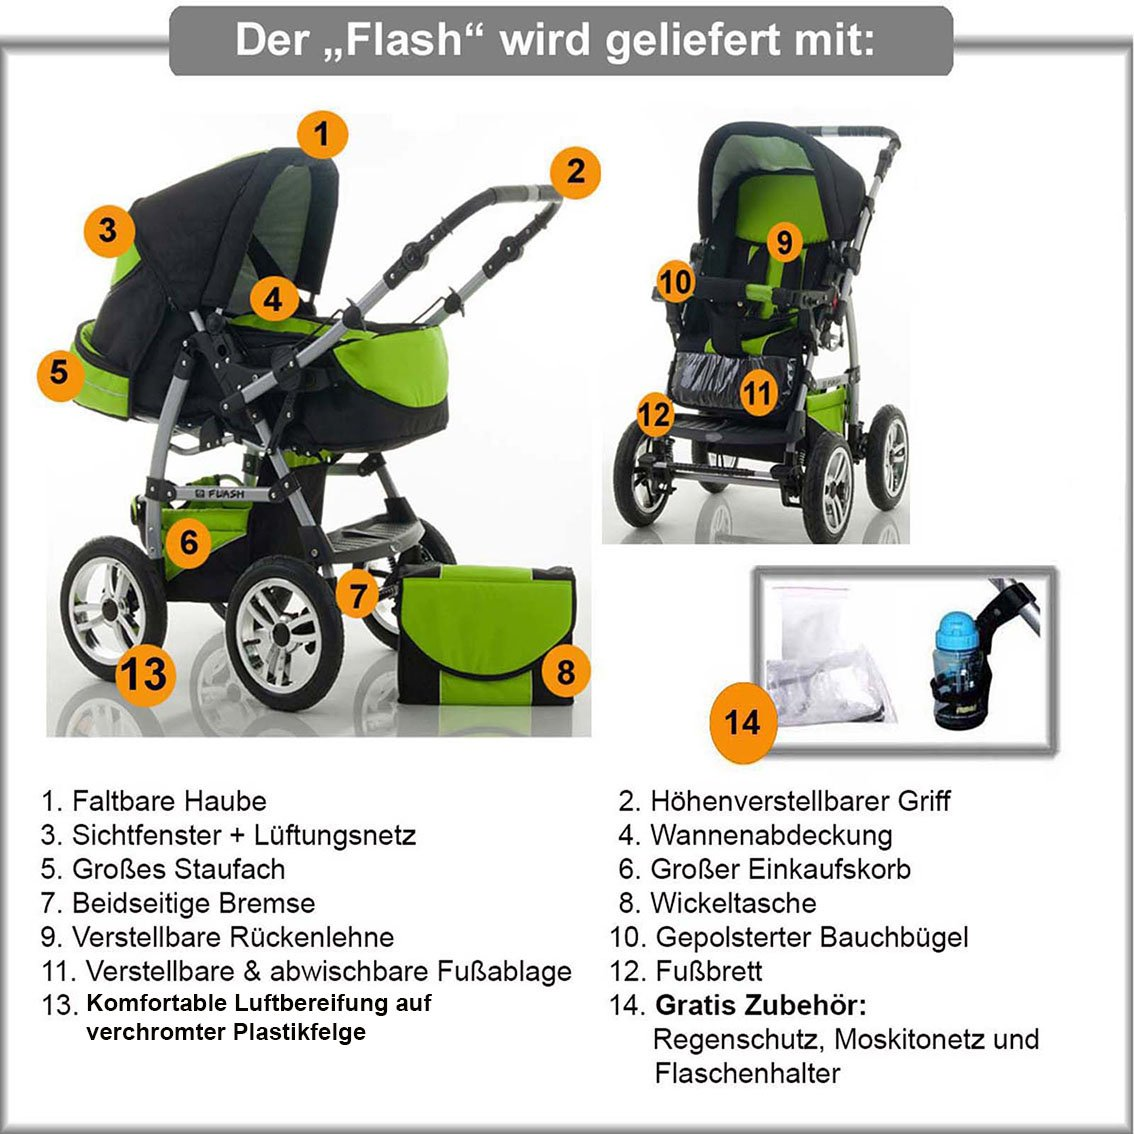 "14 teiliges Qualitäts-Kinderwagenset 2 in 1 ""FLASH"" in 38 Farben: Kinderwagen + Buggy - Megaset – all inklusive Paket in Farbe SCHWARZ dein_babyladen"